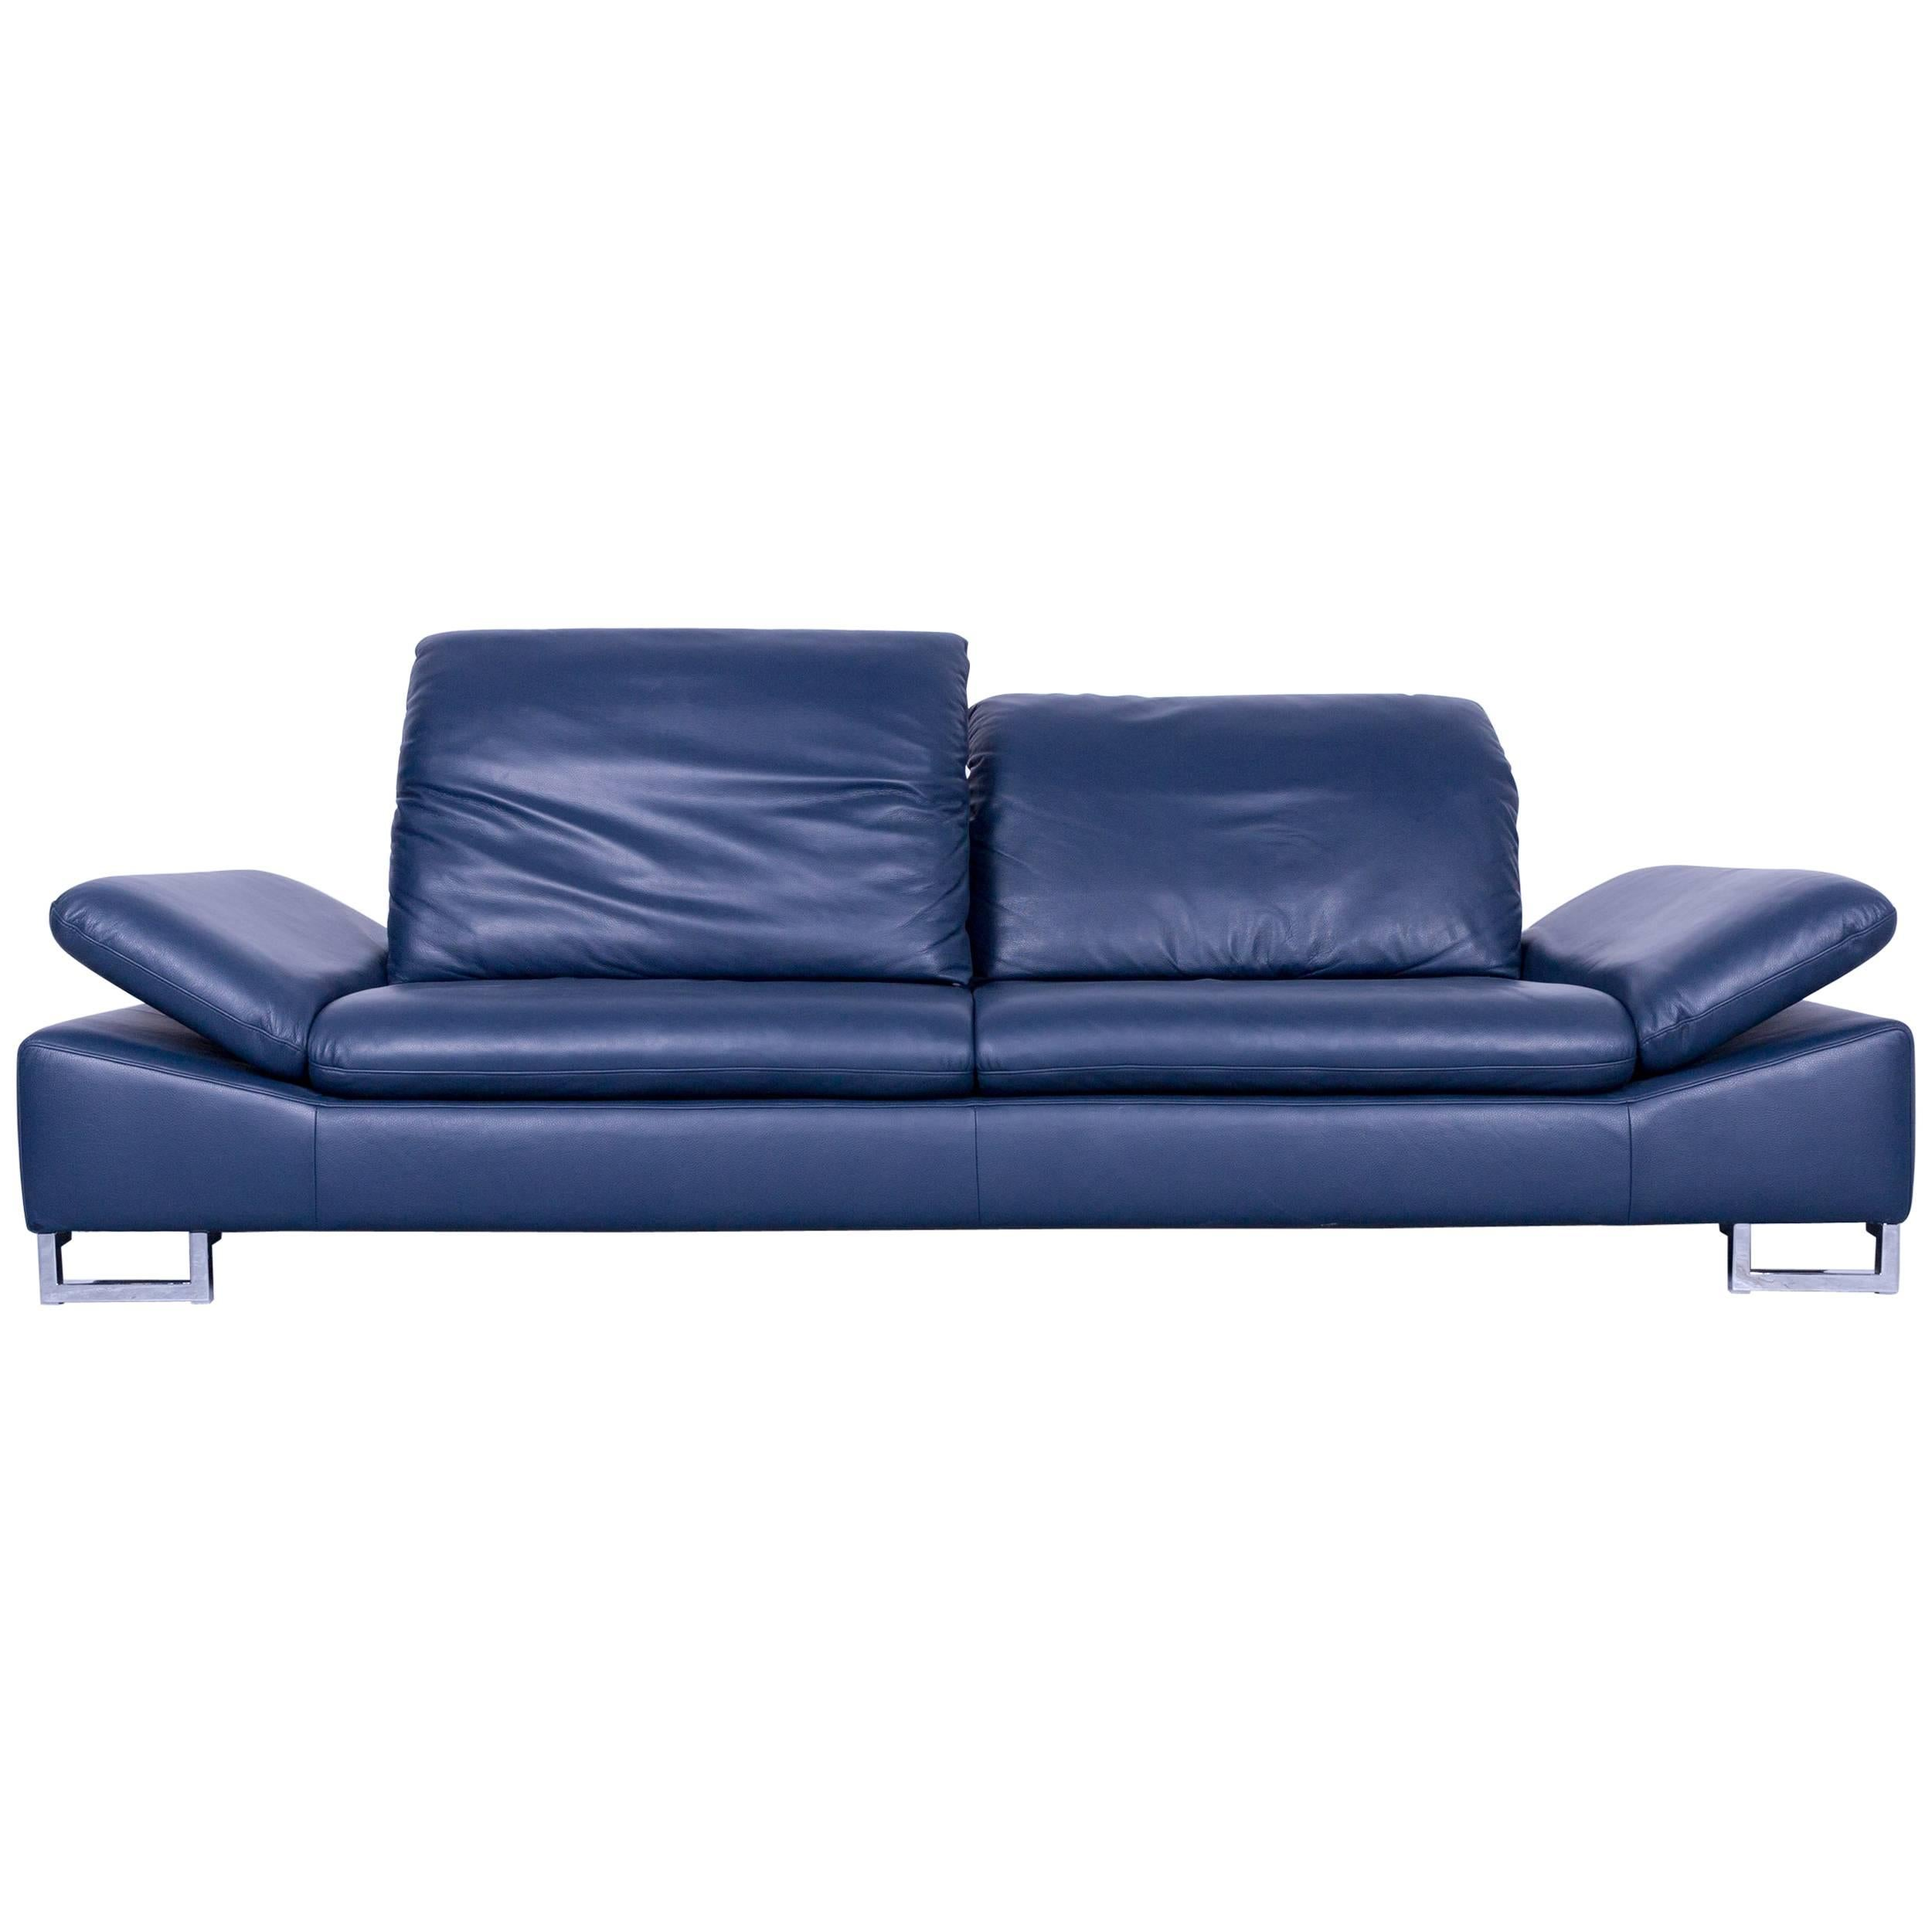 Designer Couch Willi Schillig Designer Sofa Three Seat Blue Leather Minimalistic Function Couch